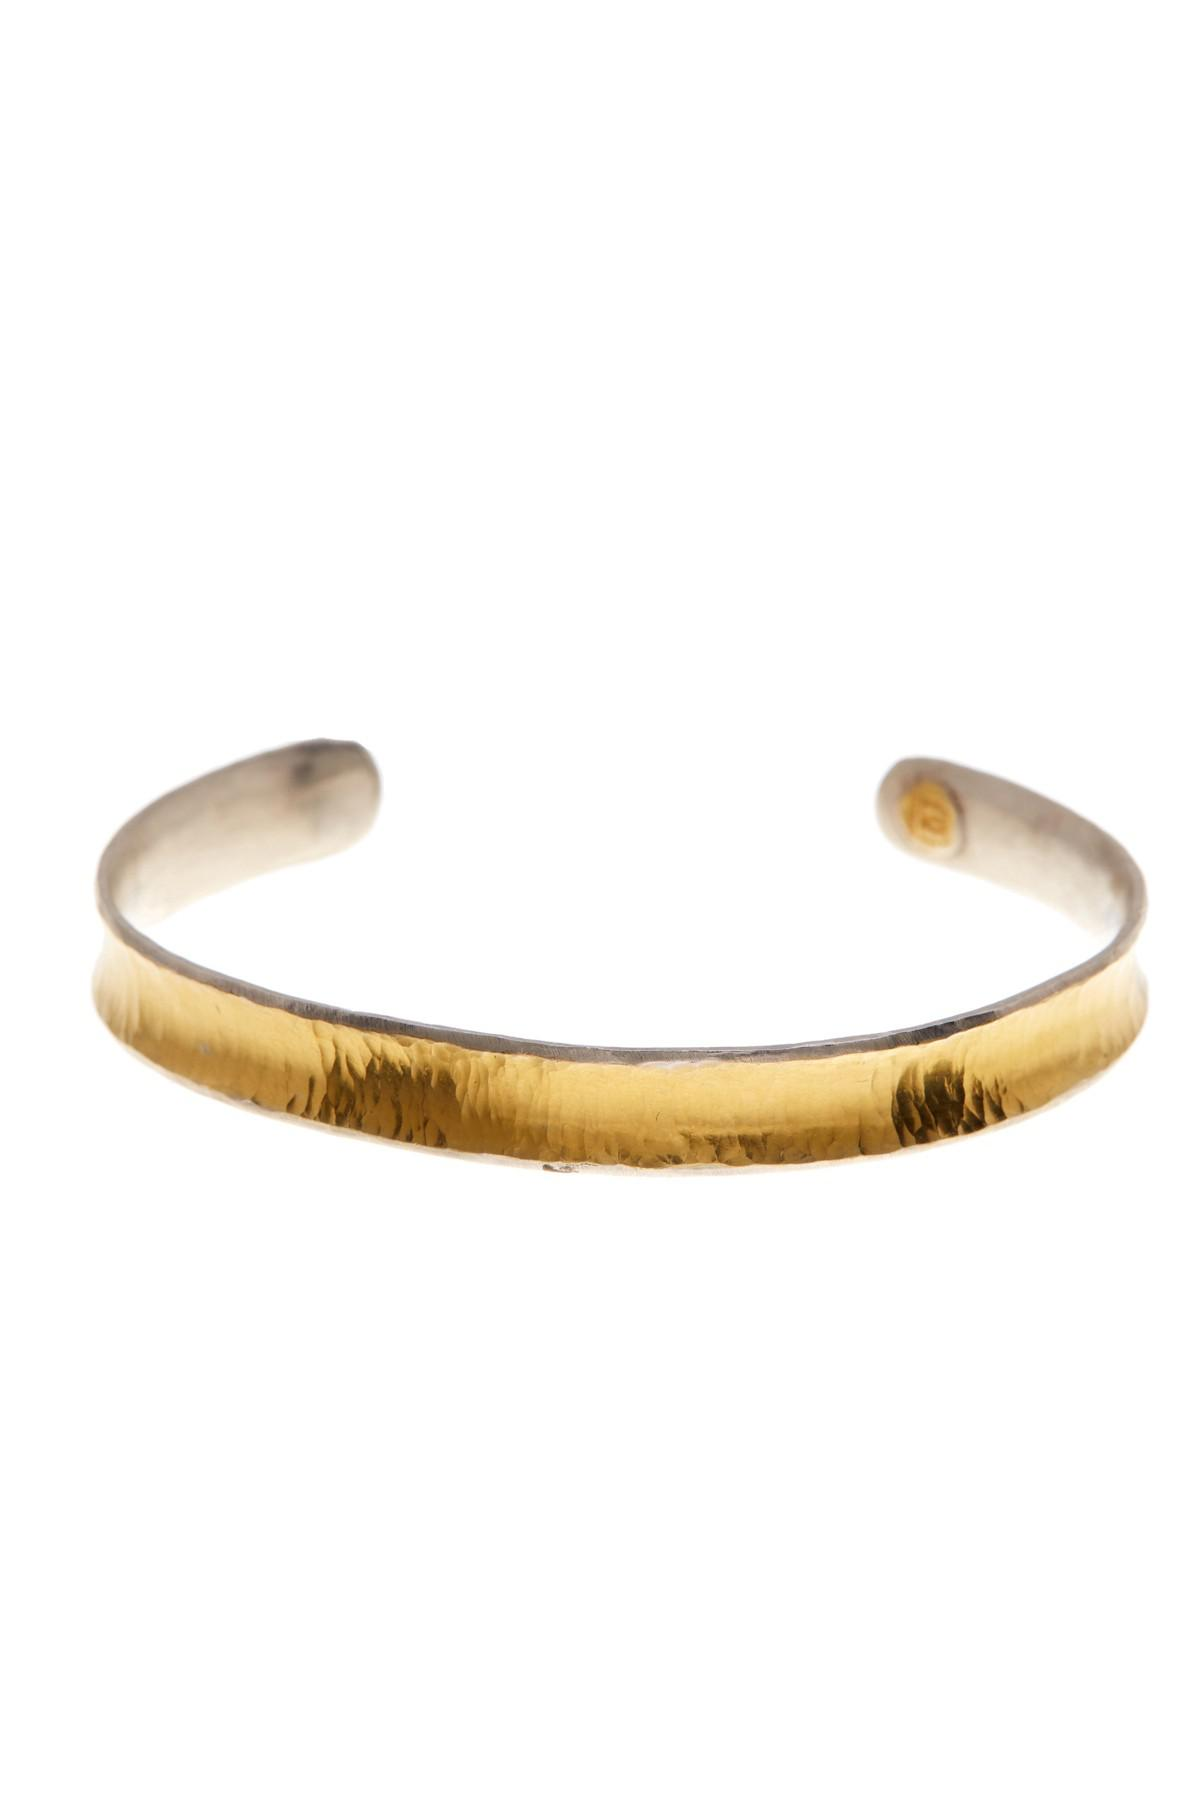 Gurhan Large Hourglass Hammered Cuff in 24K Gold 4D35PMpg